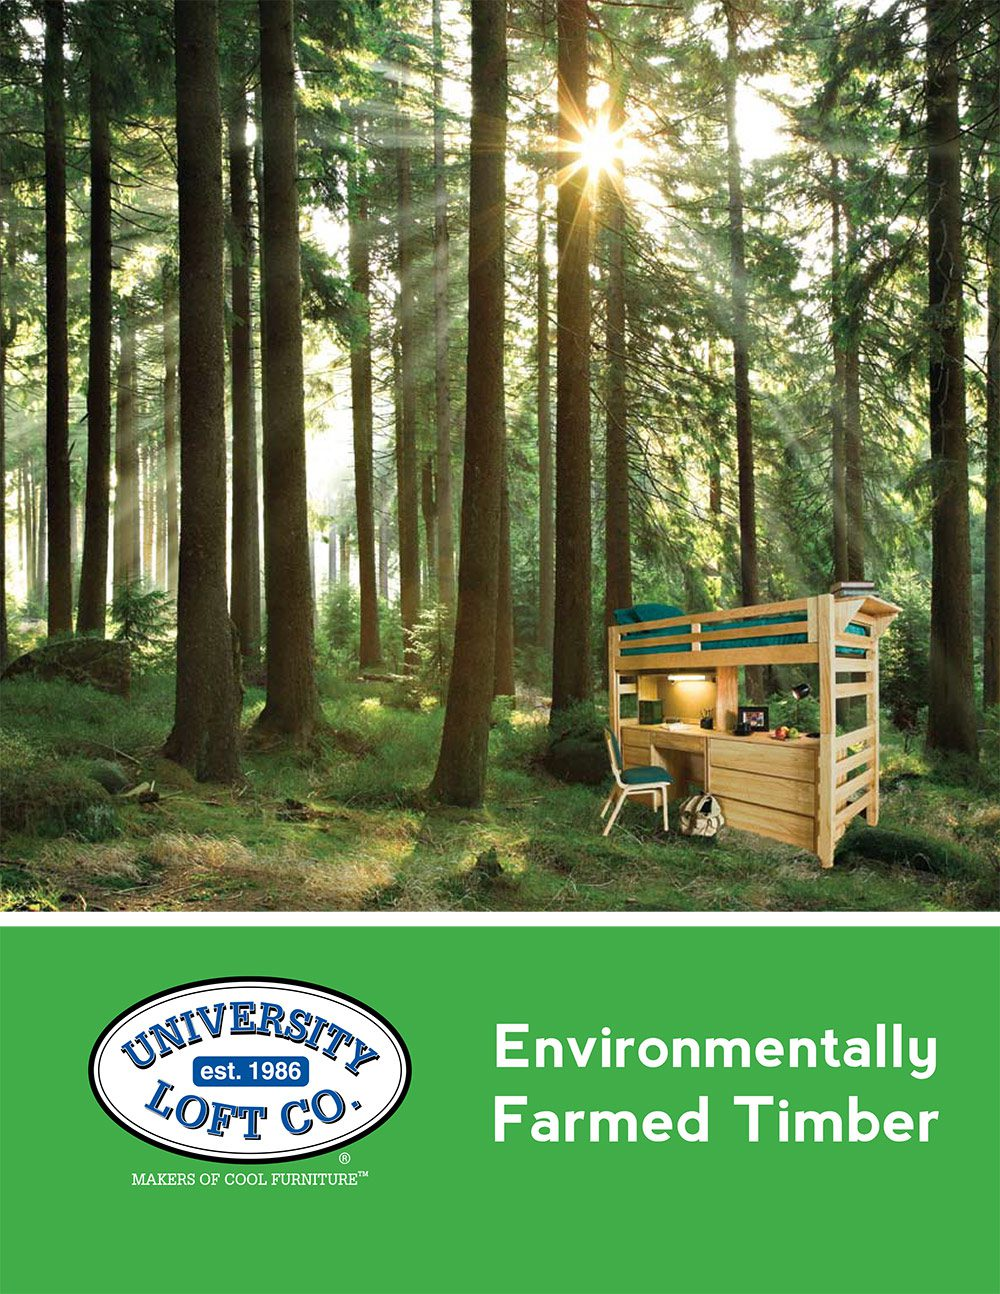 Environmentally Farmed Timber